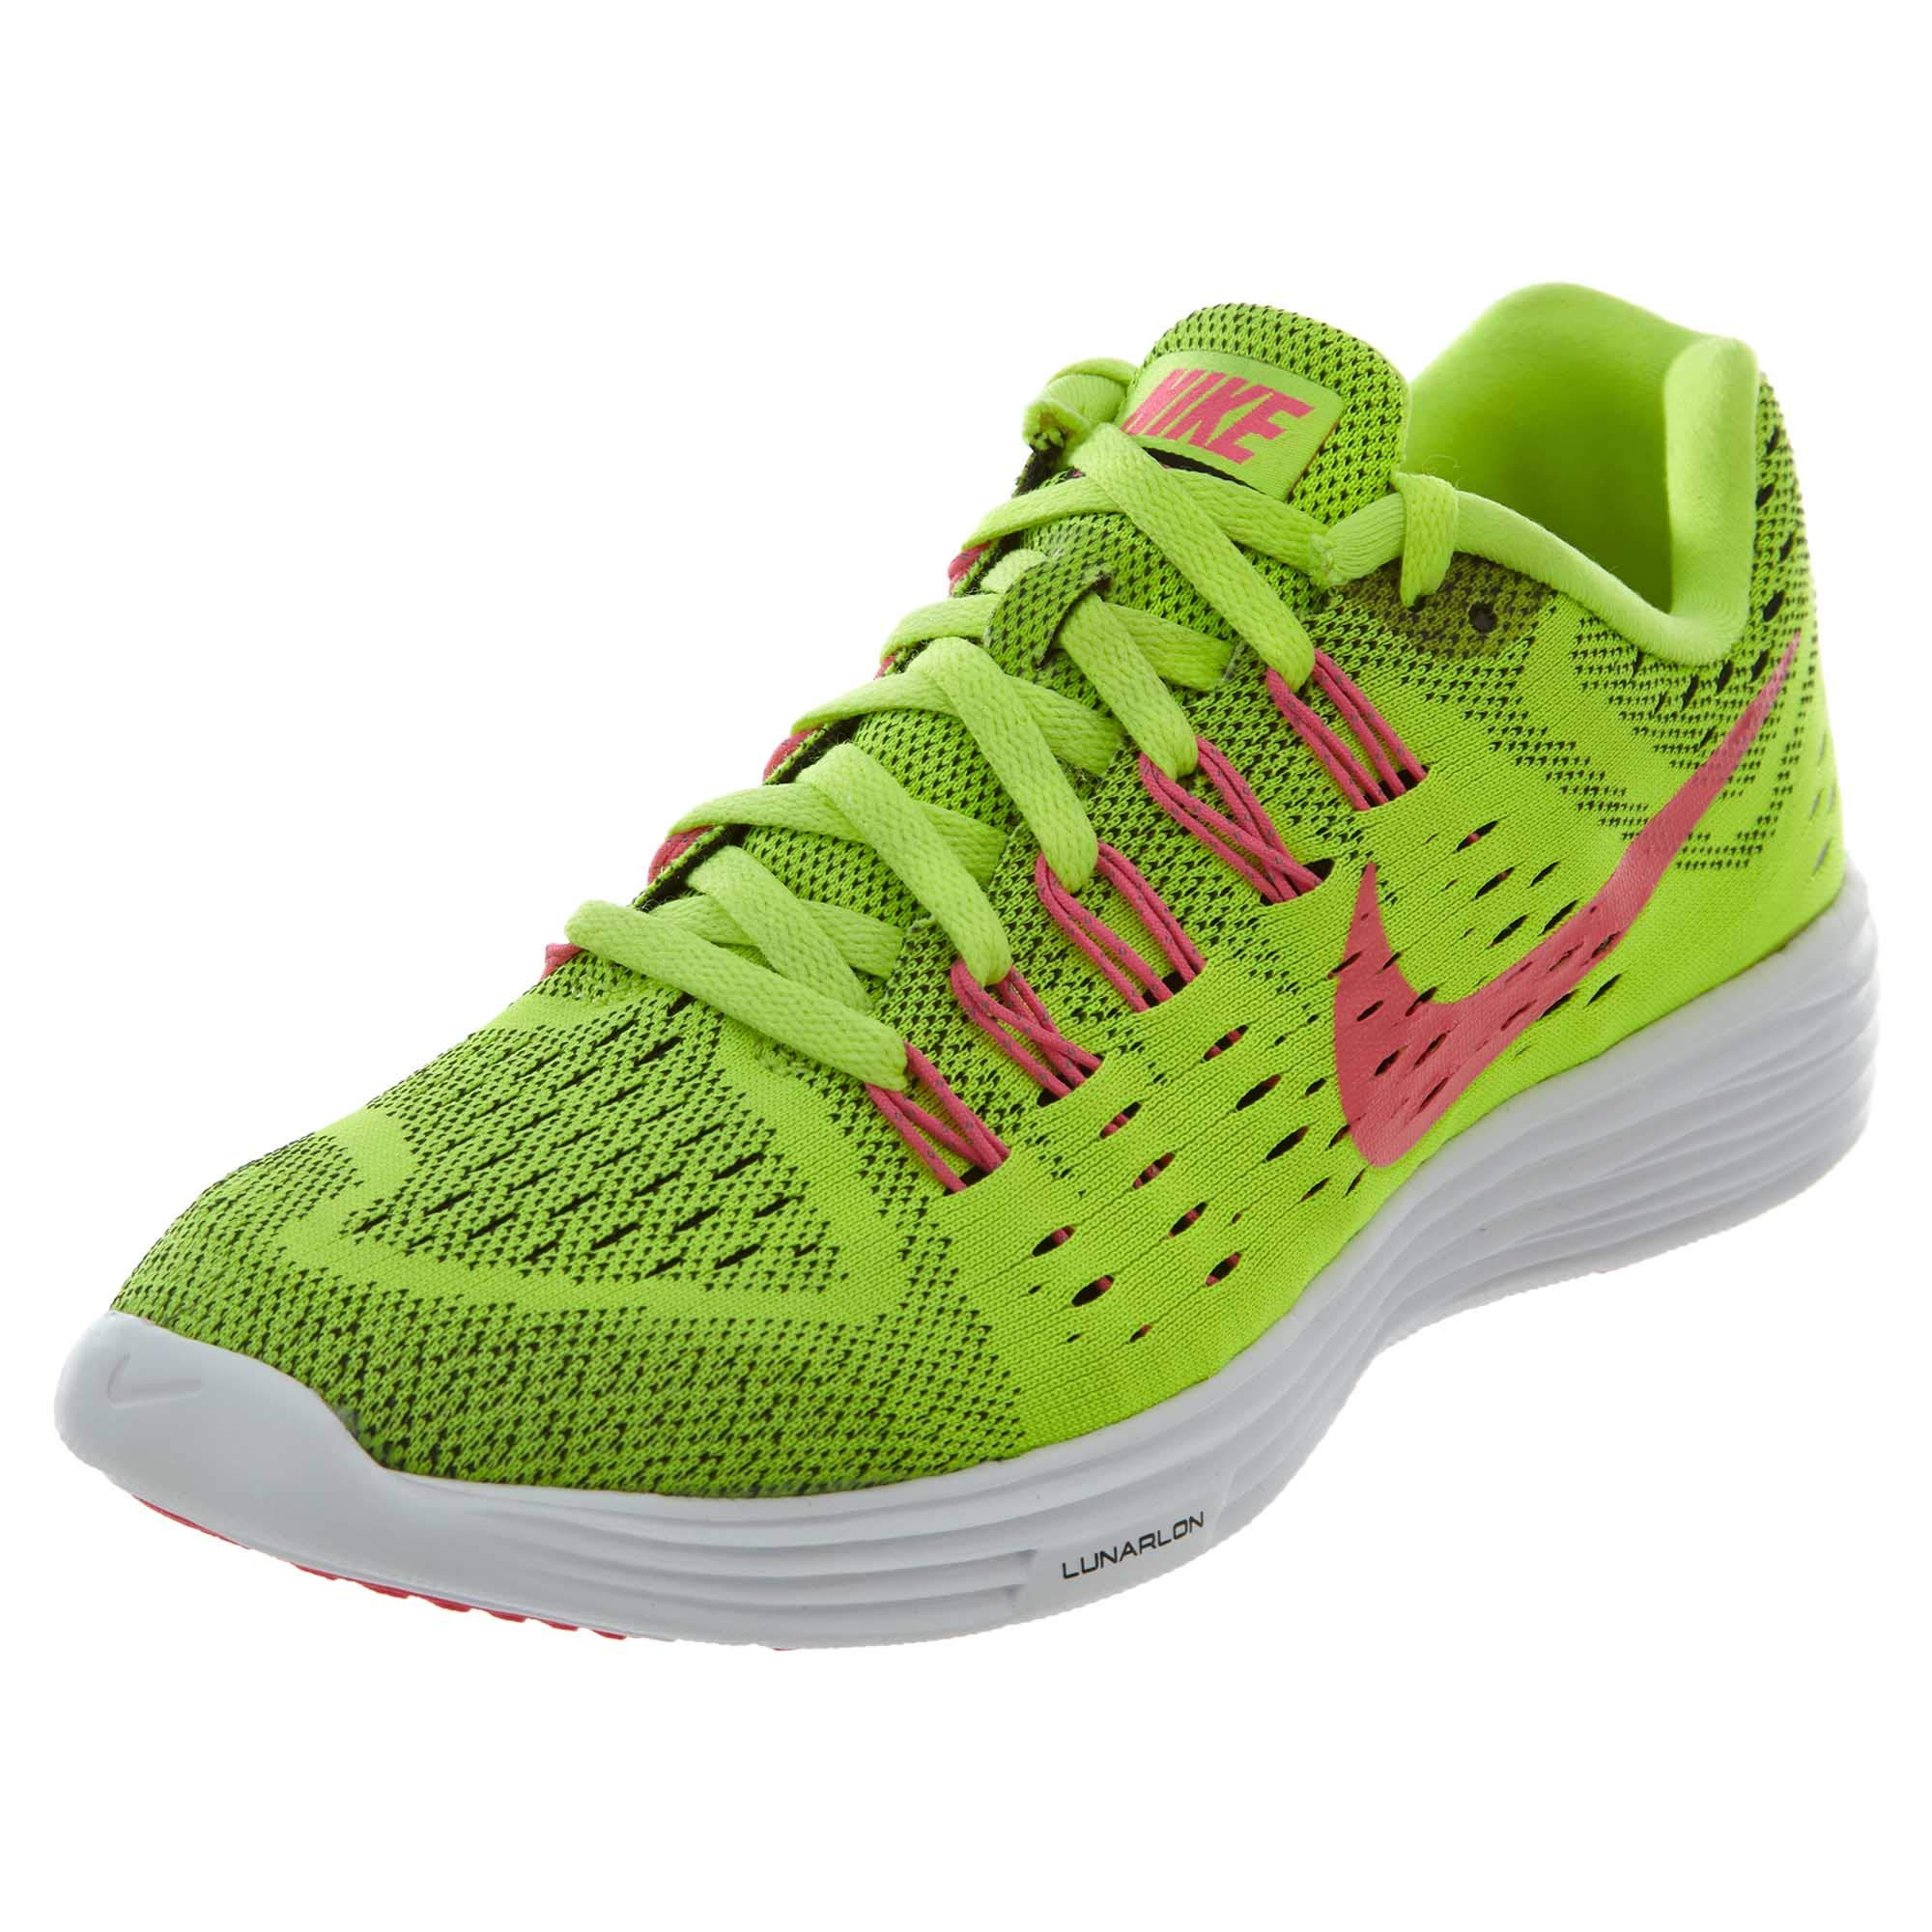 competitive price 3faaa 0bcde Nike Lunartempo Sz 11 Womens Running Shoes Yellow New In Box